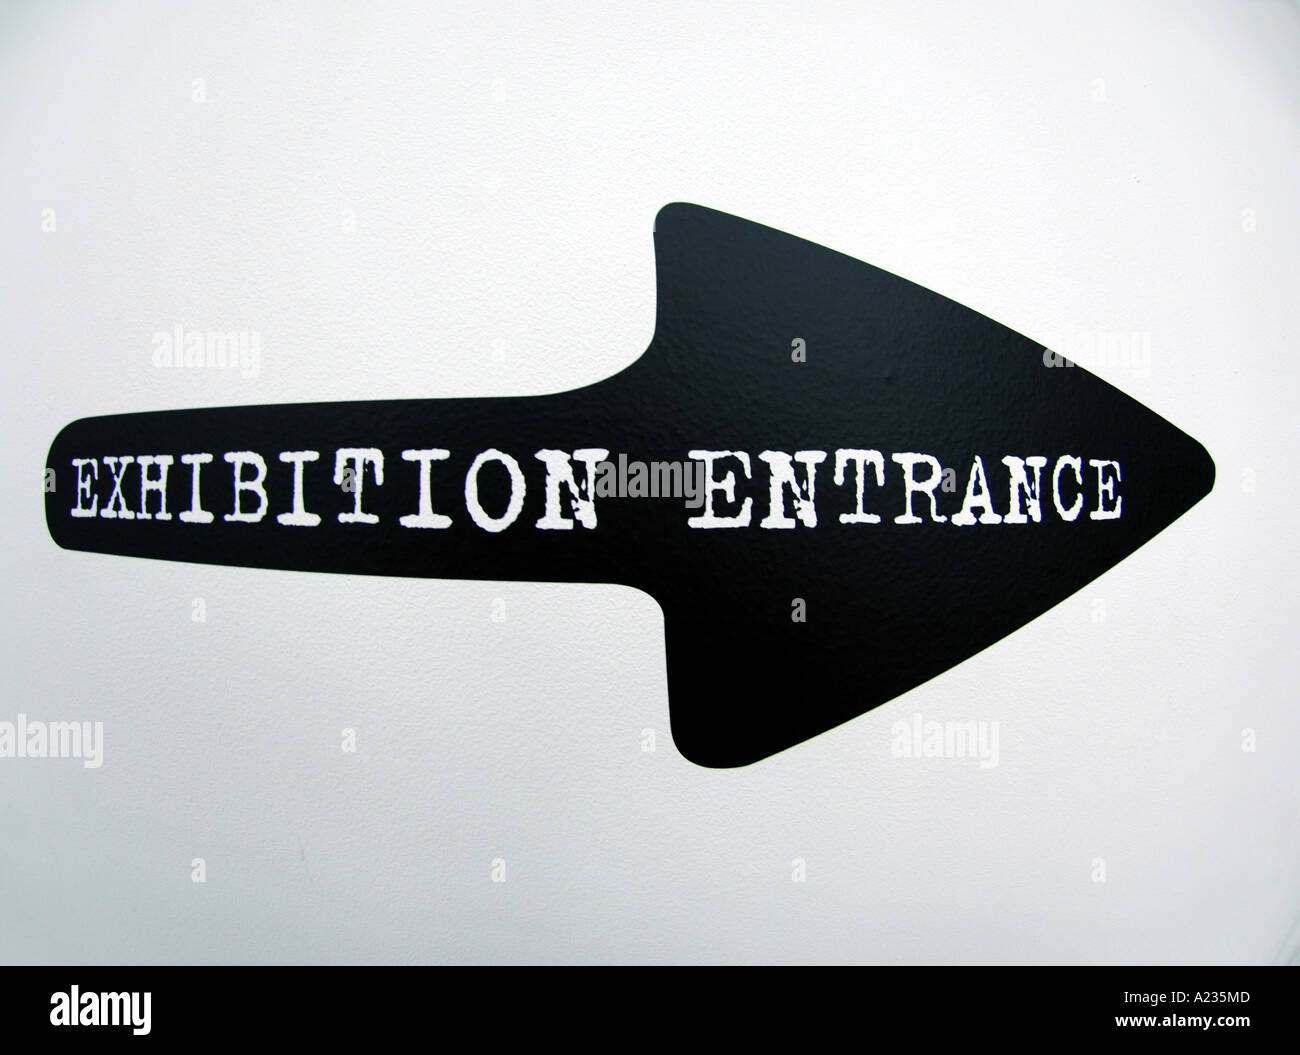 main entrance sign urbis glass Urbis Urban Urbis Museum Urbis Manchester Manc museum culture cultural architecture building glas - Stock Image